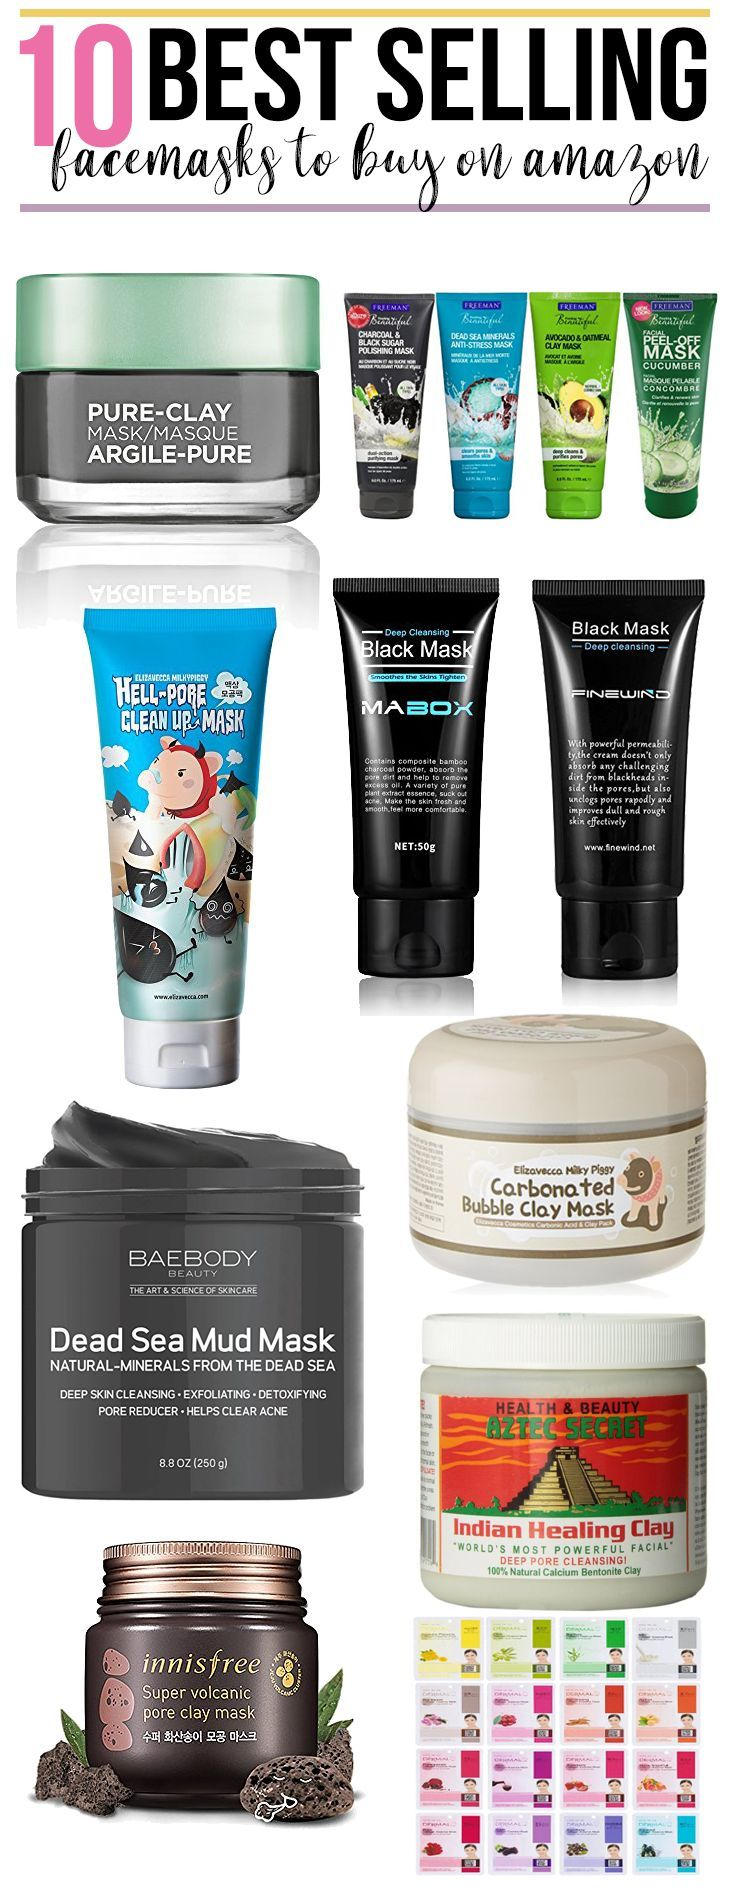 10 Best Selling Facemasks On Amazon Hairspray And Highheels Skin Care Makeup Skin Care Natural Skin Care